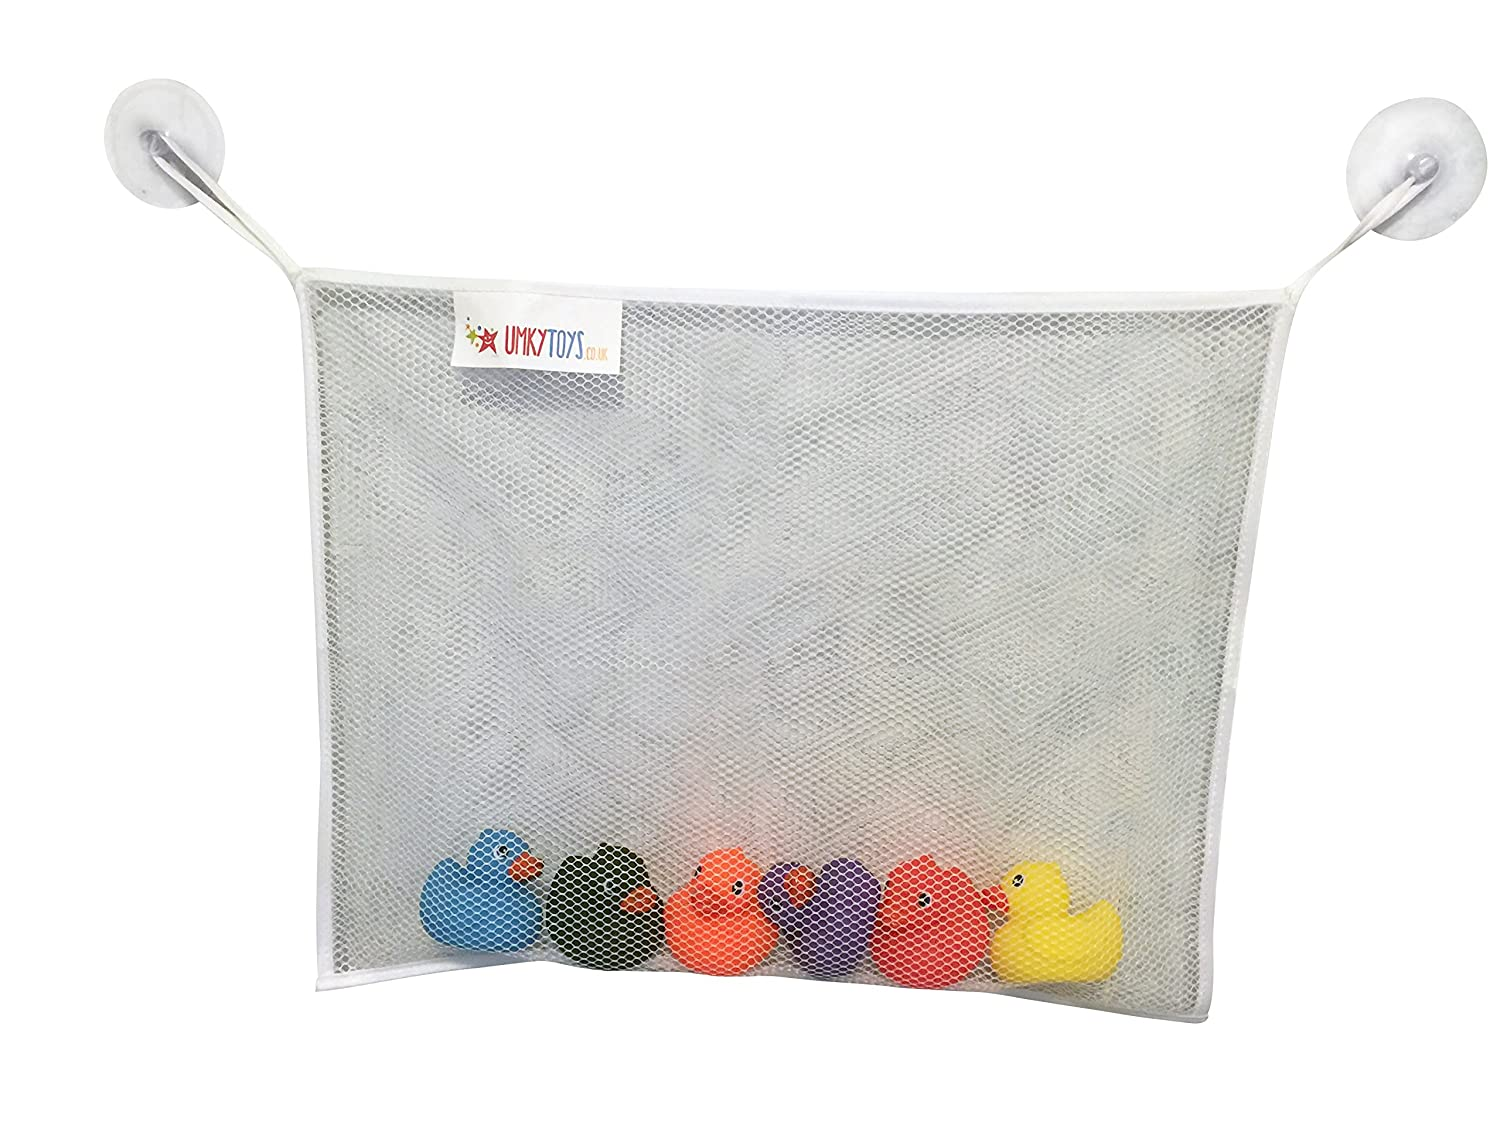 Baby Bath Toy Bag Organiser Large Toy Storage Tidy Bag with 4 Sided Border Extra Strong Large Suction Cups UMKYTOYS